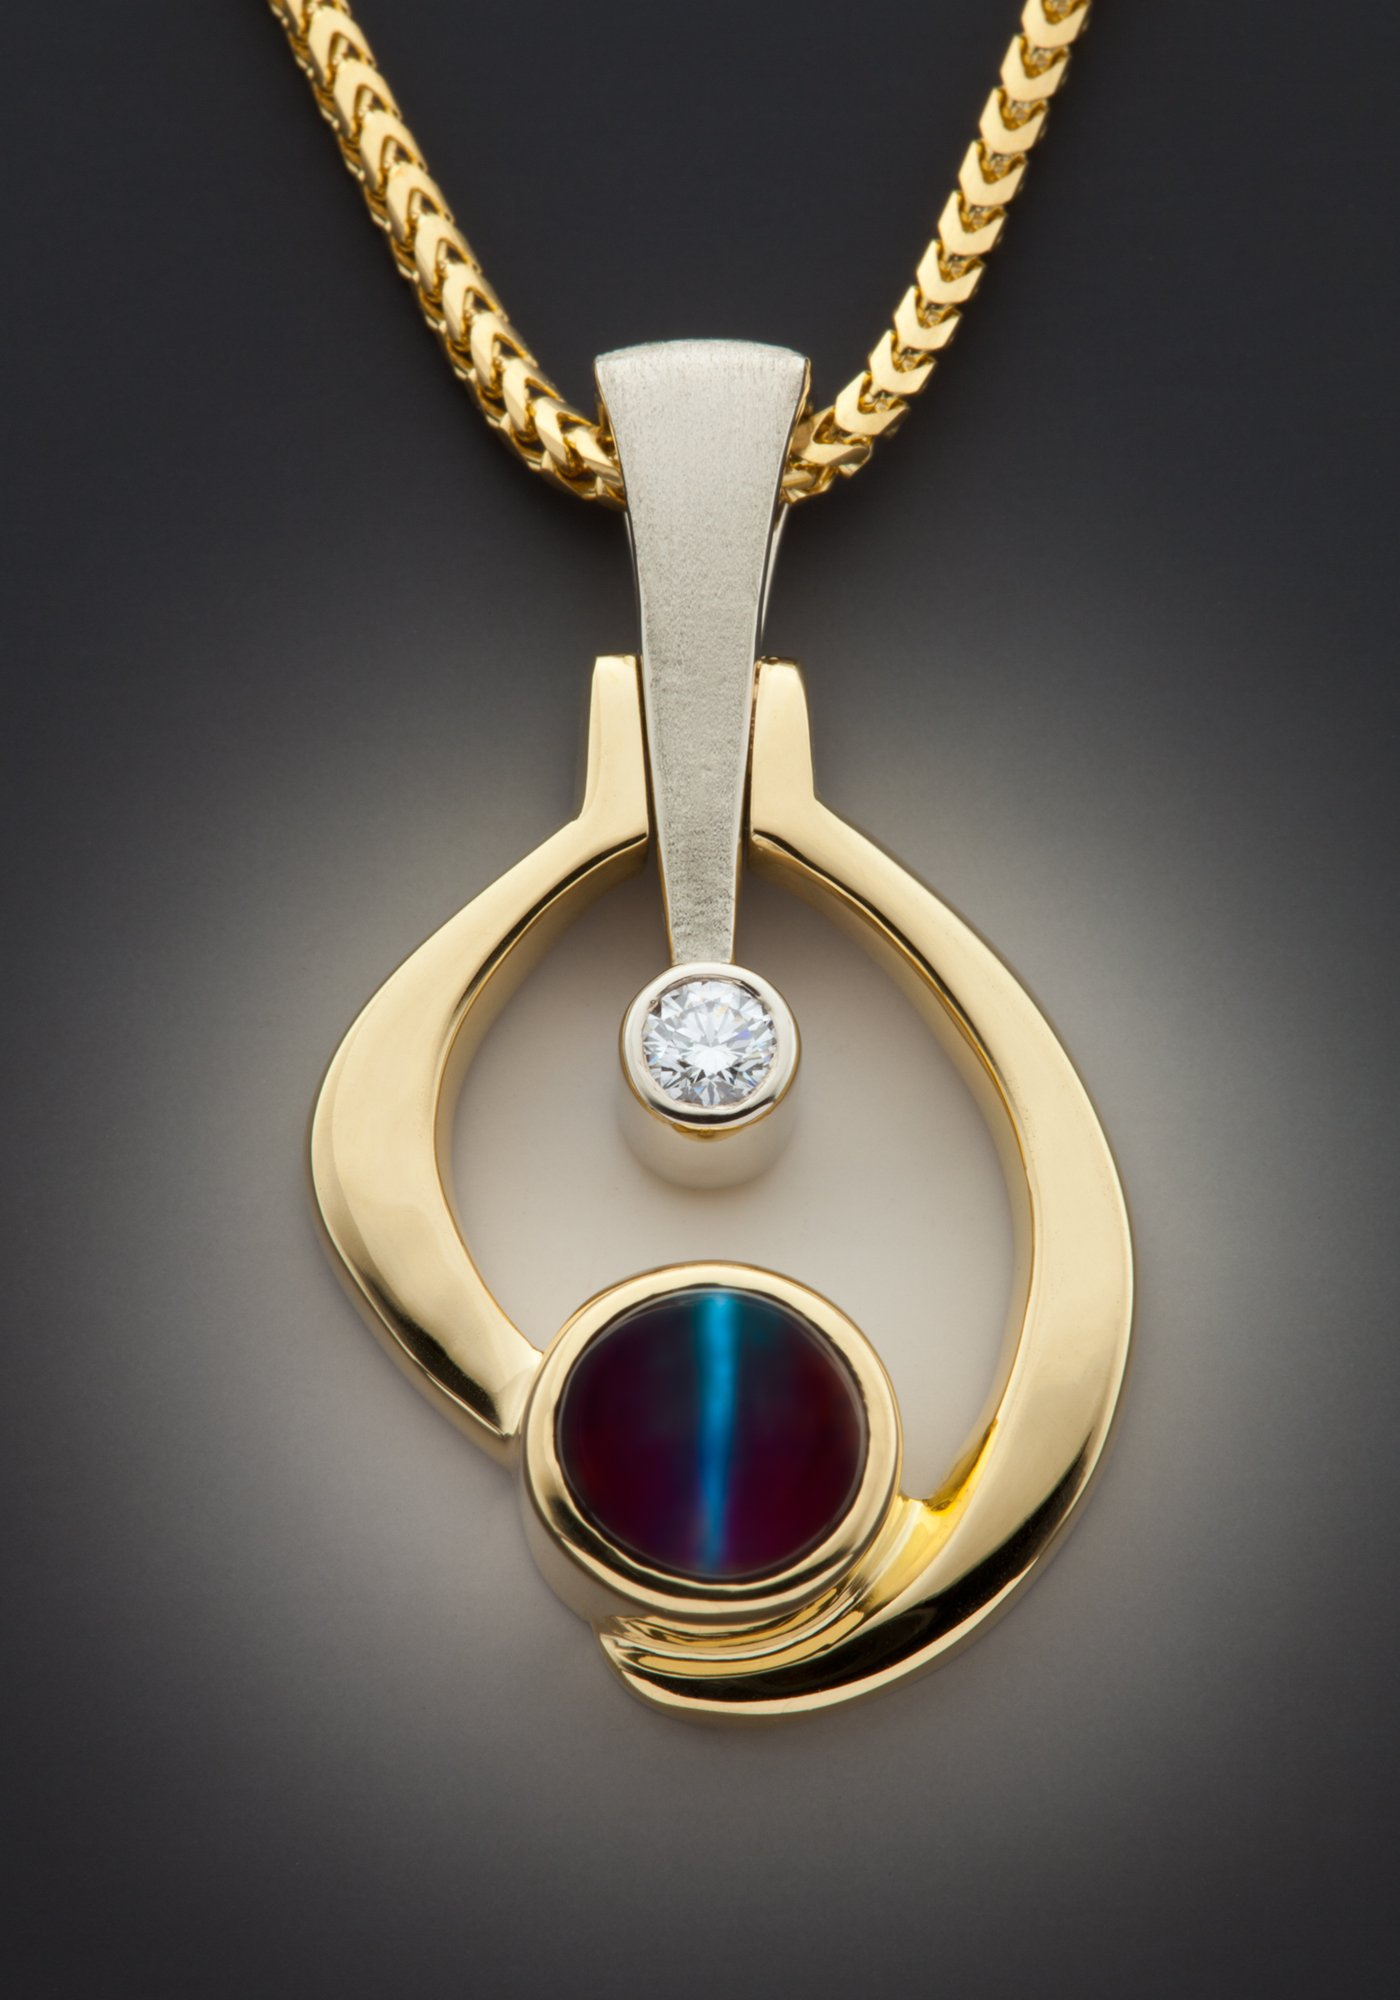 pendant chain necklace y large rare certified necklaces products copy img gold alexandrite bespoke